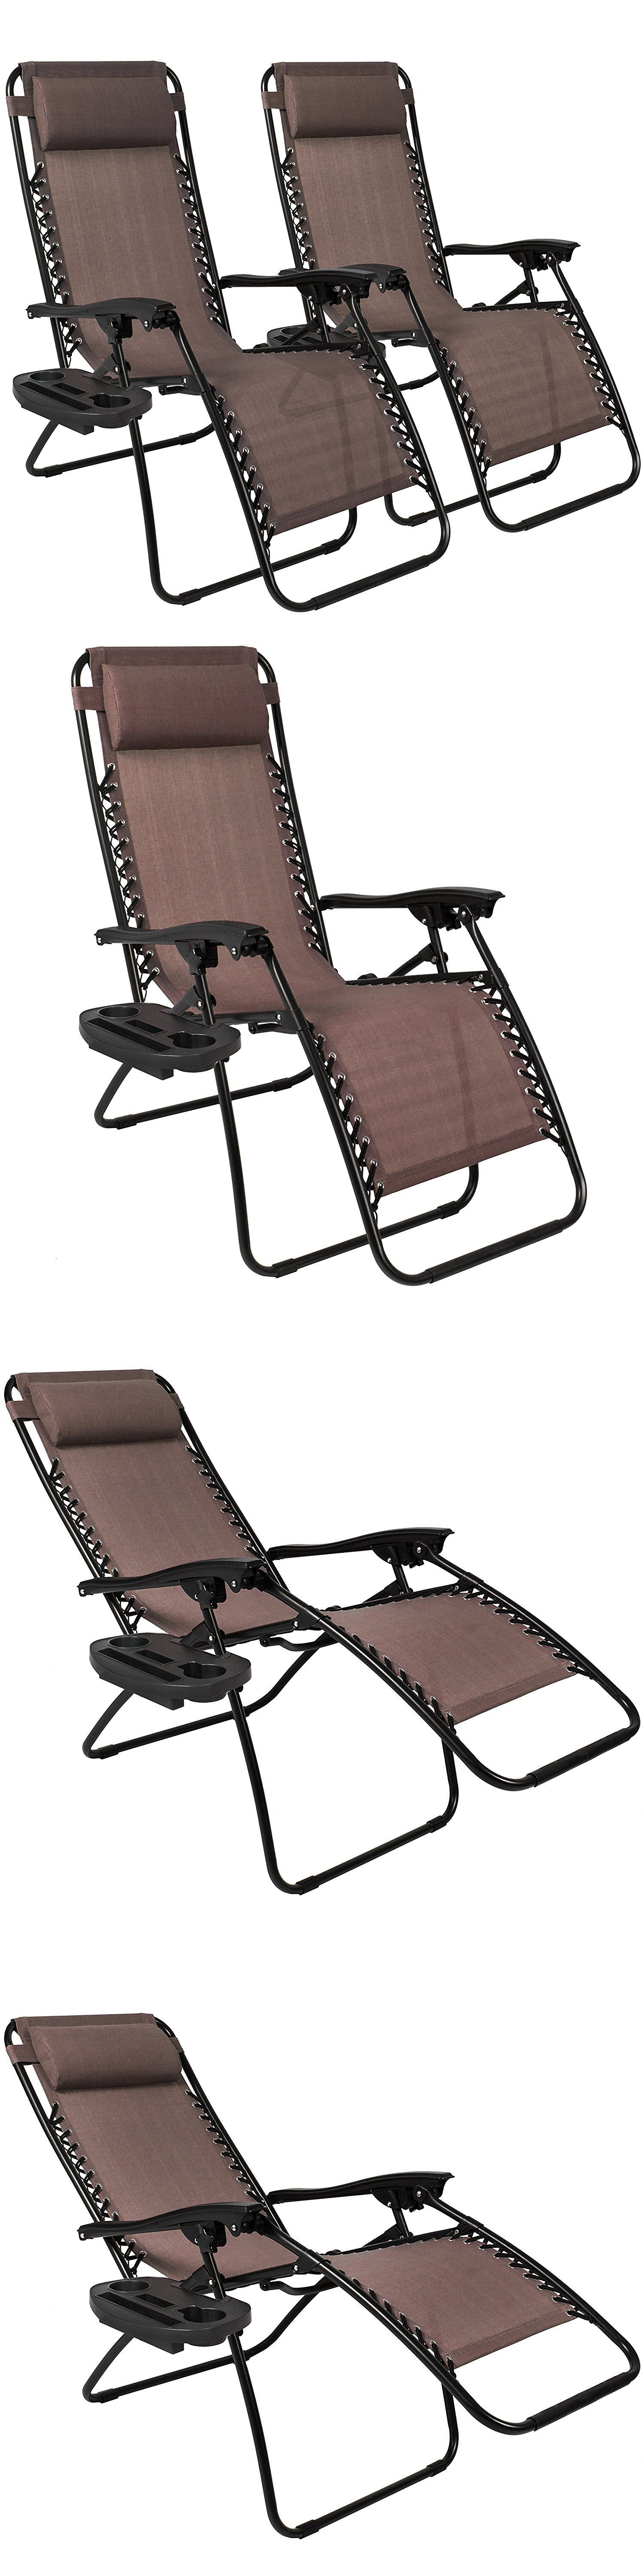 Lounges pack zero gravity chairs lounge patio chairs